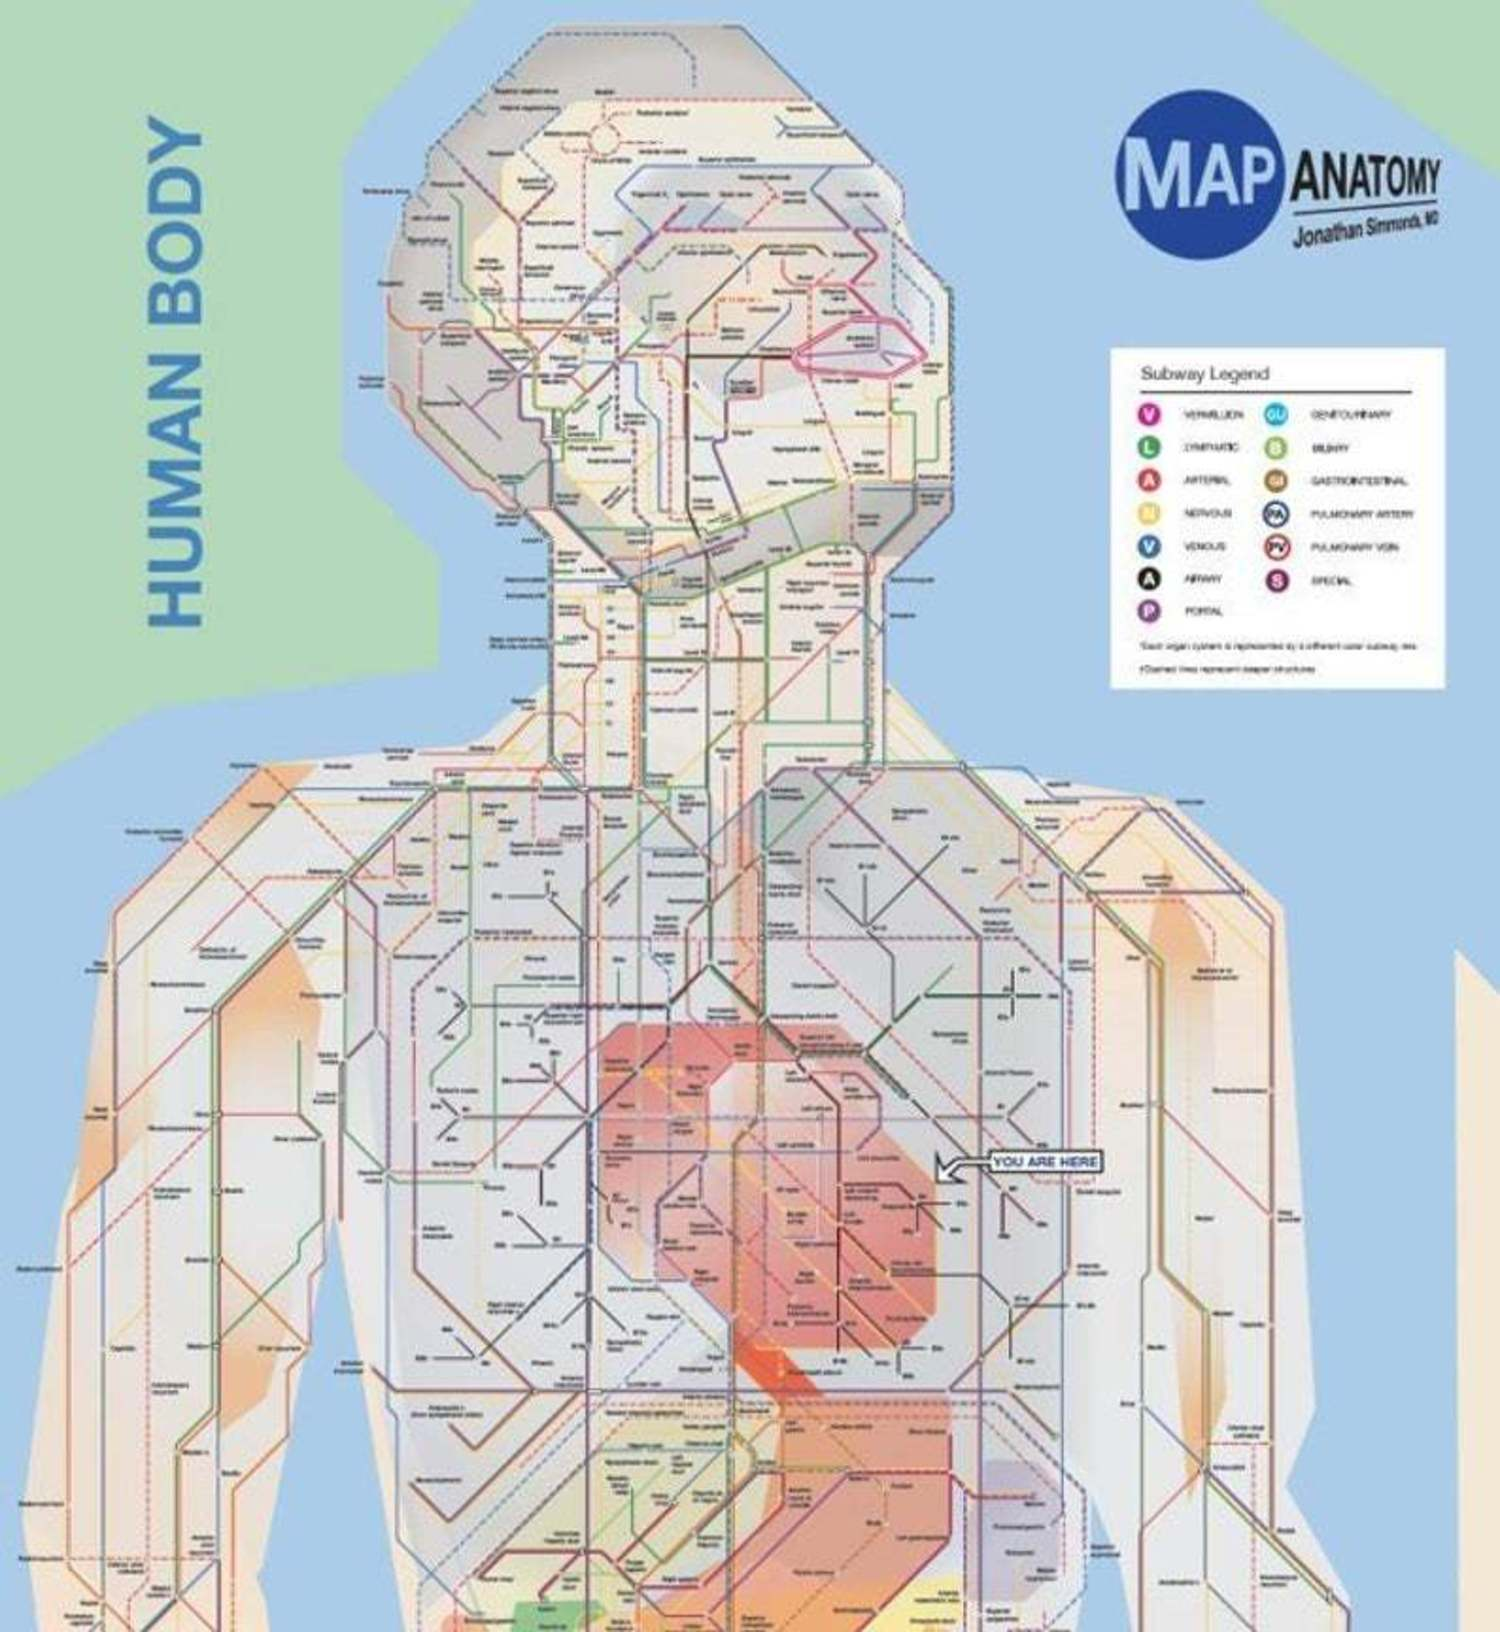 Poster - NYC style map of the entire human body (a schematic done in the style of the NYC subway)